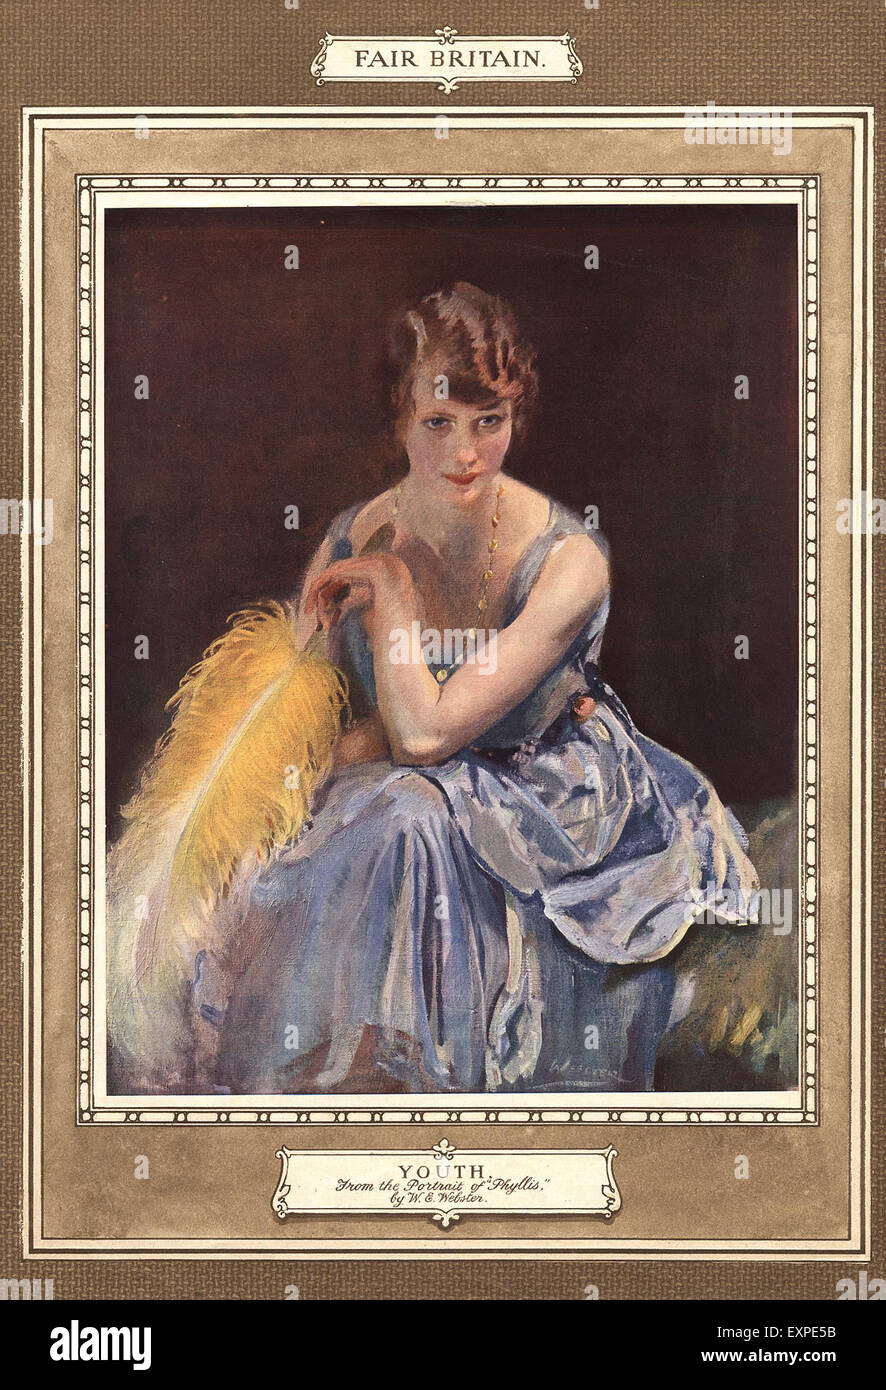 1910s UK Portraits Magazine Plate - Stock Image